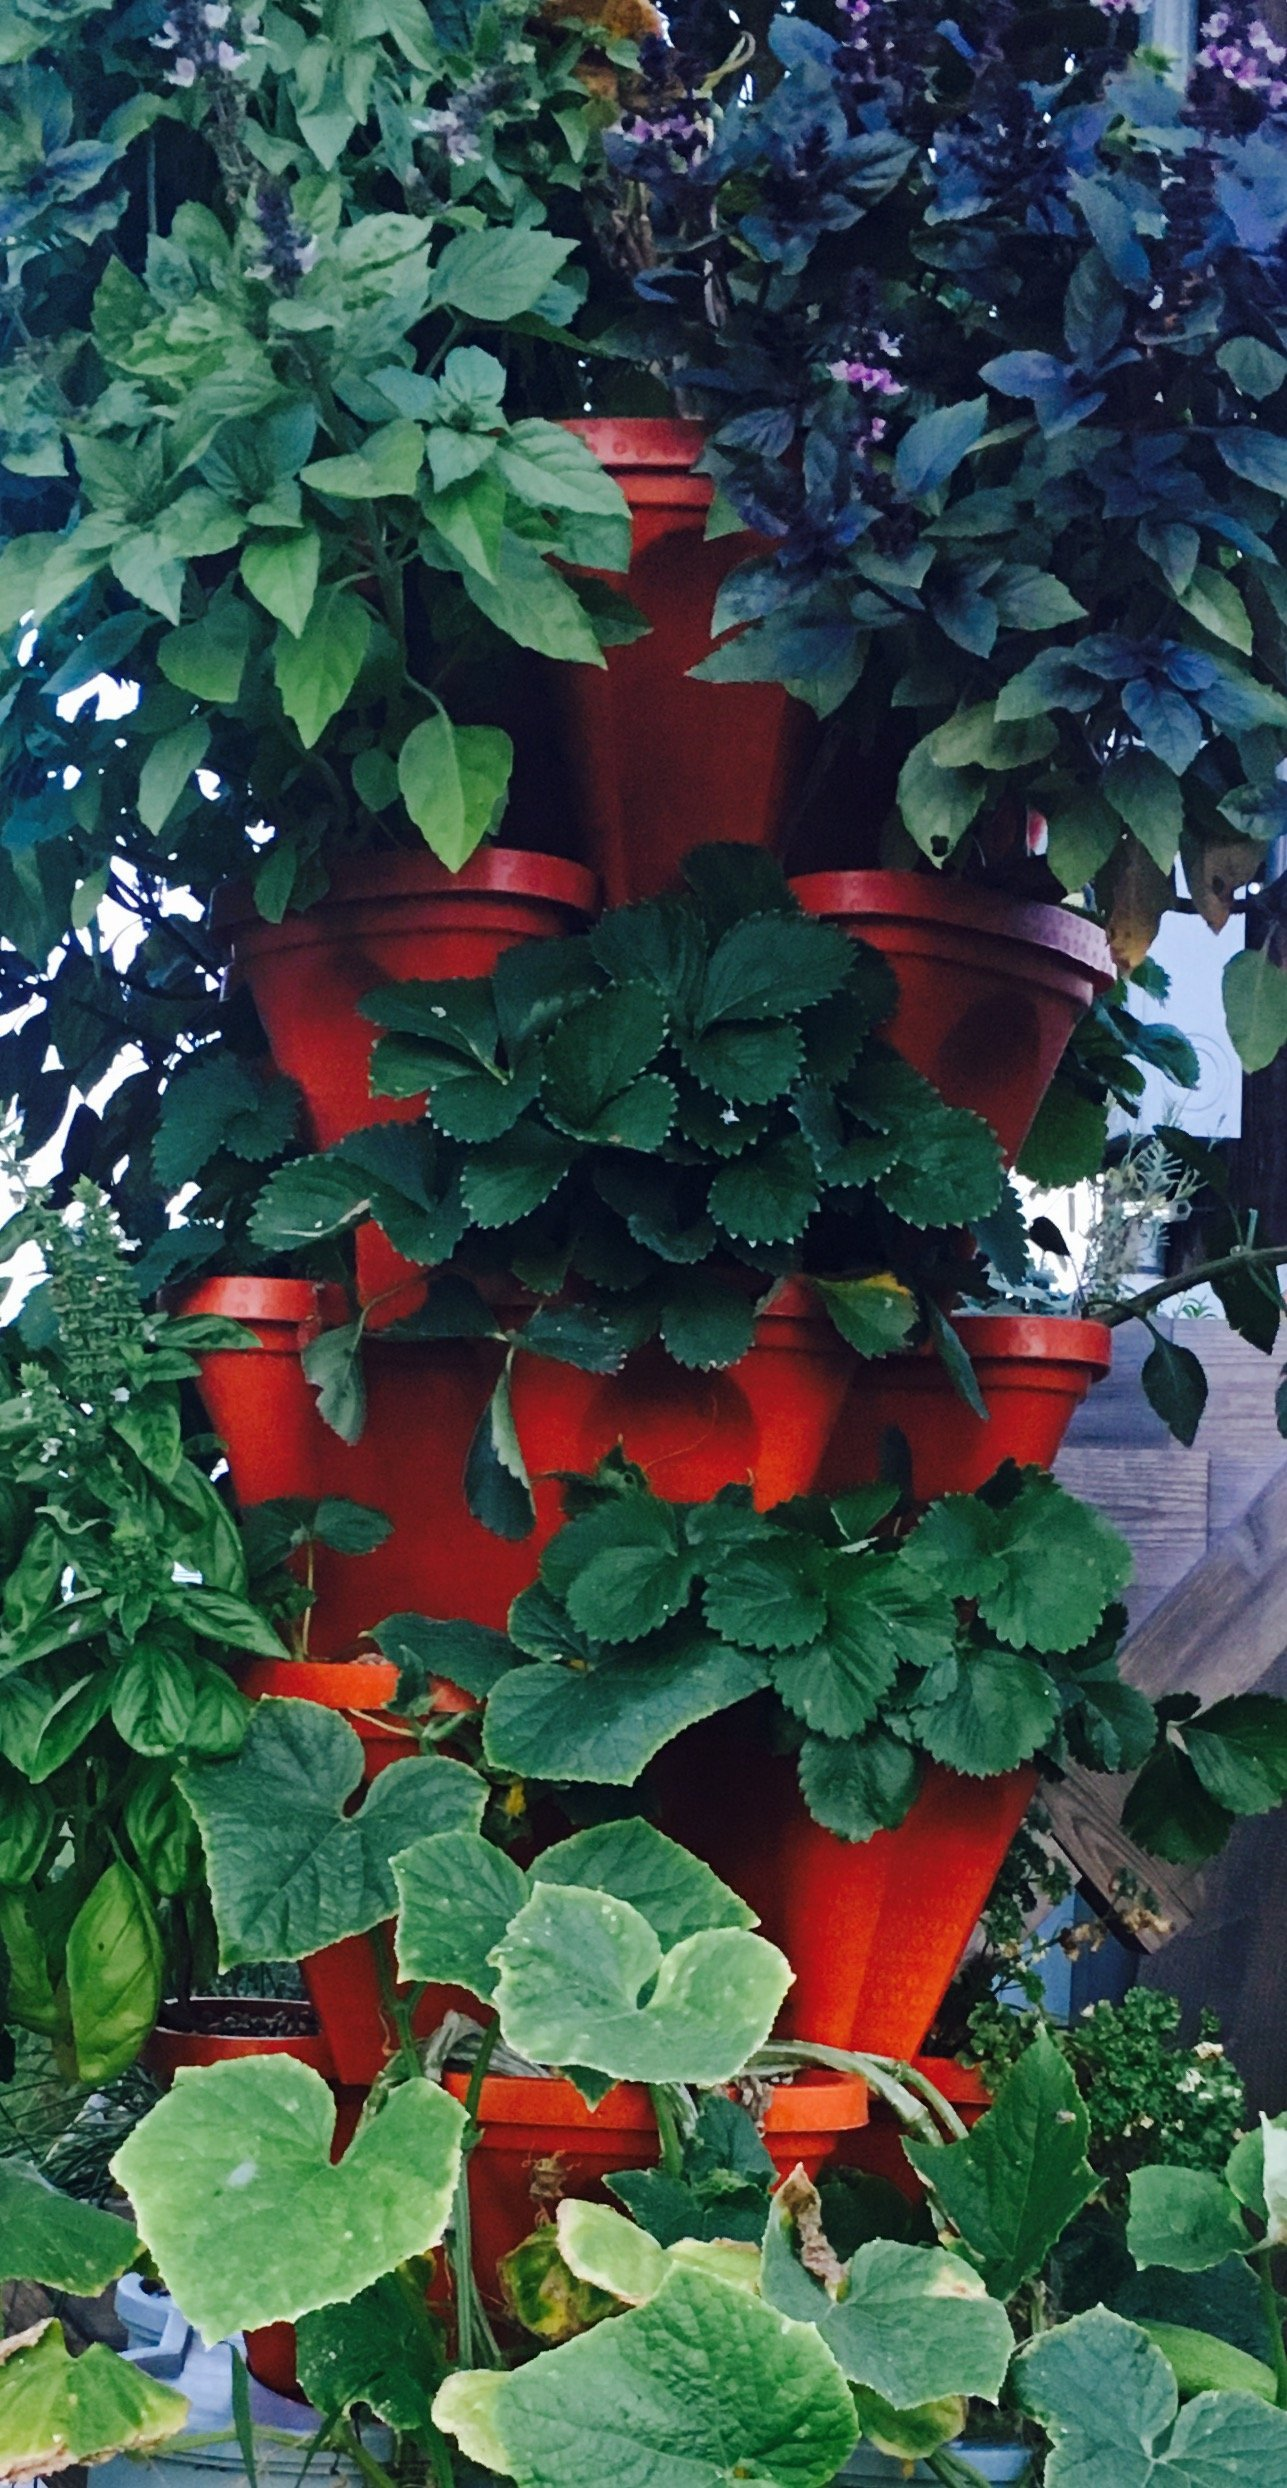 Cucumber Stack Enjoy For Growing Strawberry Plant Stacky Tomato LARGE Vertical Gardening Stackable Planters by Mr Grow More Using Limited Space And Minimum Effort - Build Your Own Backyard Vertical Garden Pepper DIY Stacking Container System